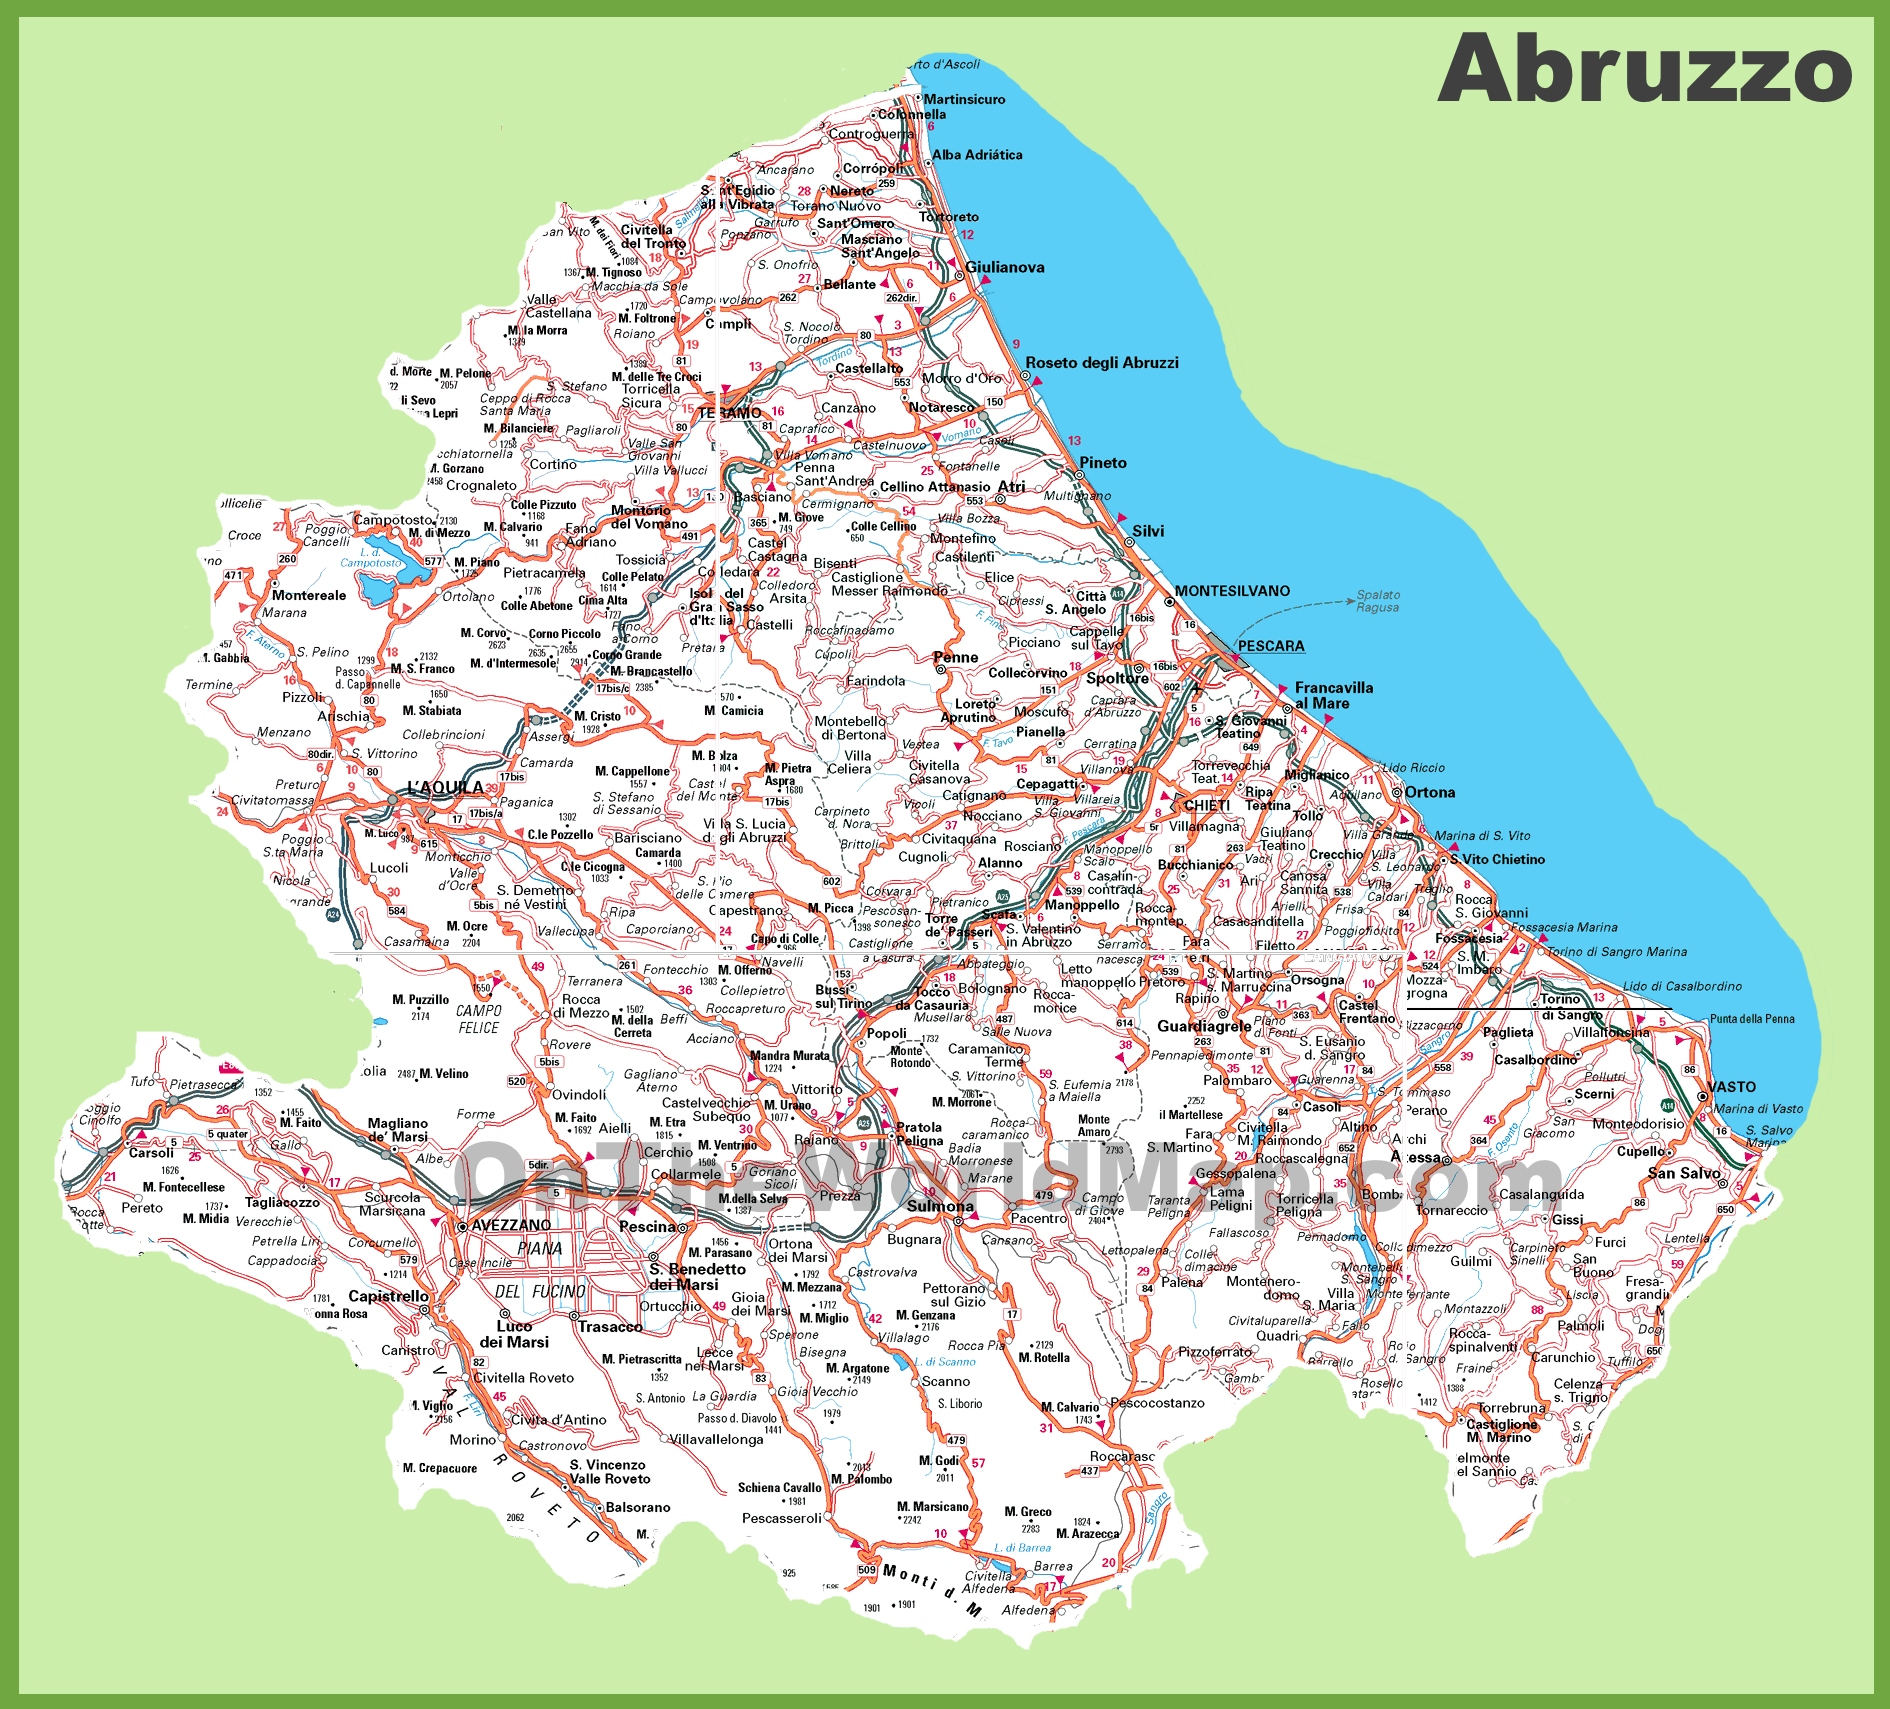 Large Detailed Map Of Abruzzo With Cities And Towns - Cities map of italy